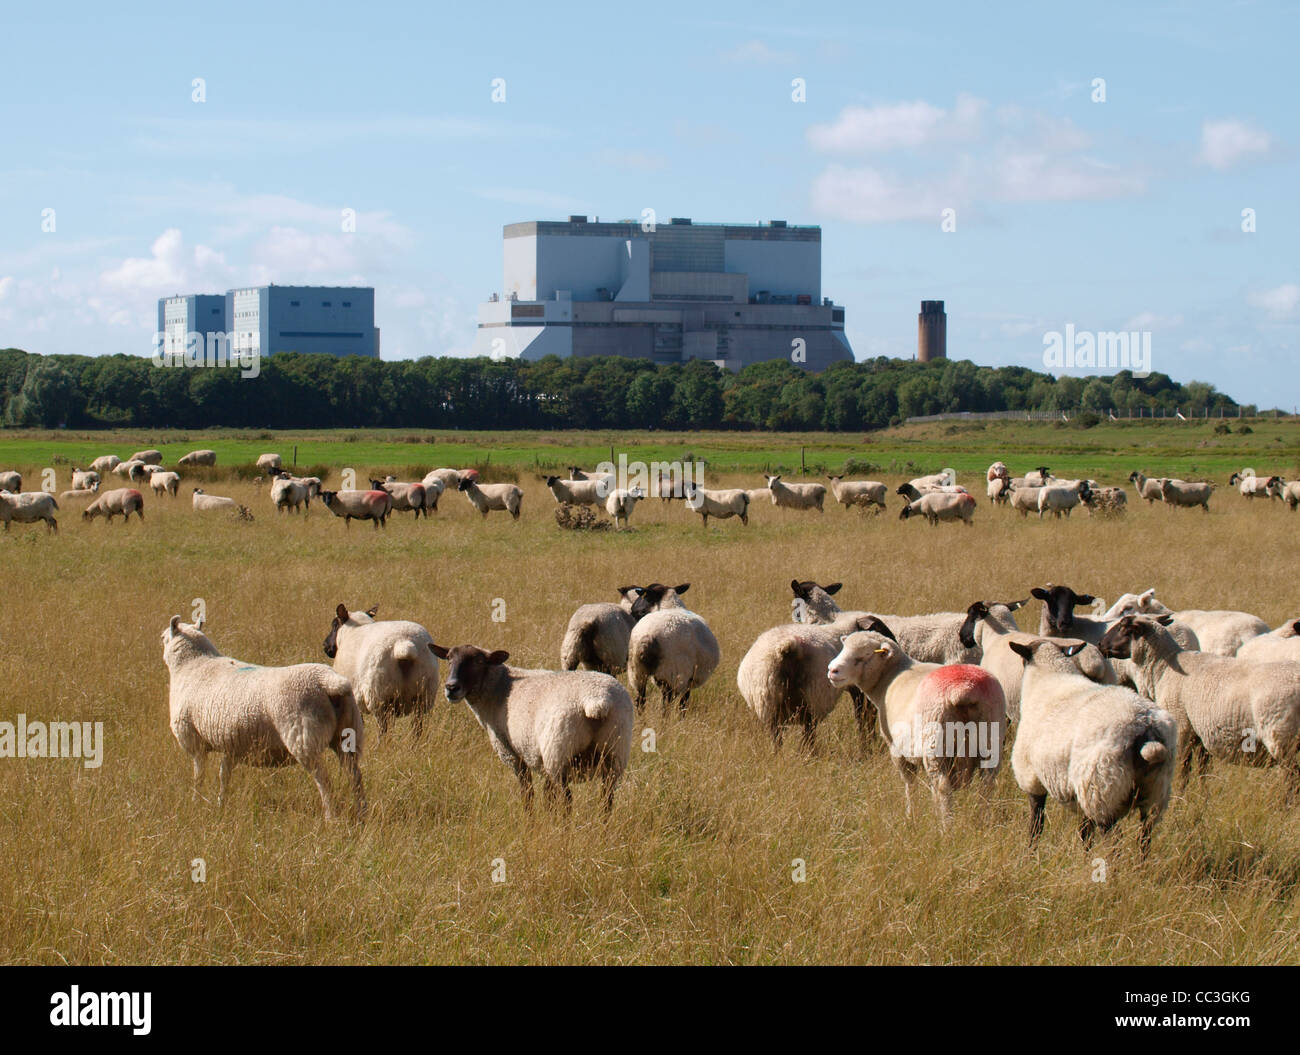 Sheep in front of Hinkley Point nuclear power station, Somerset, UK - Stock Image